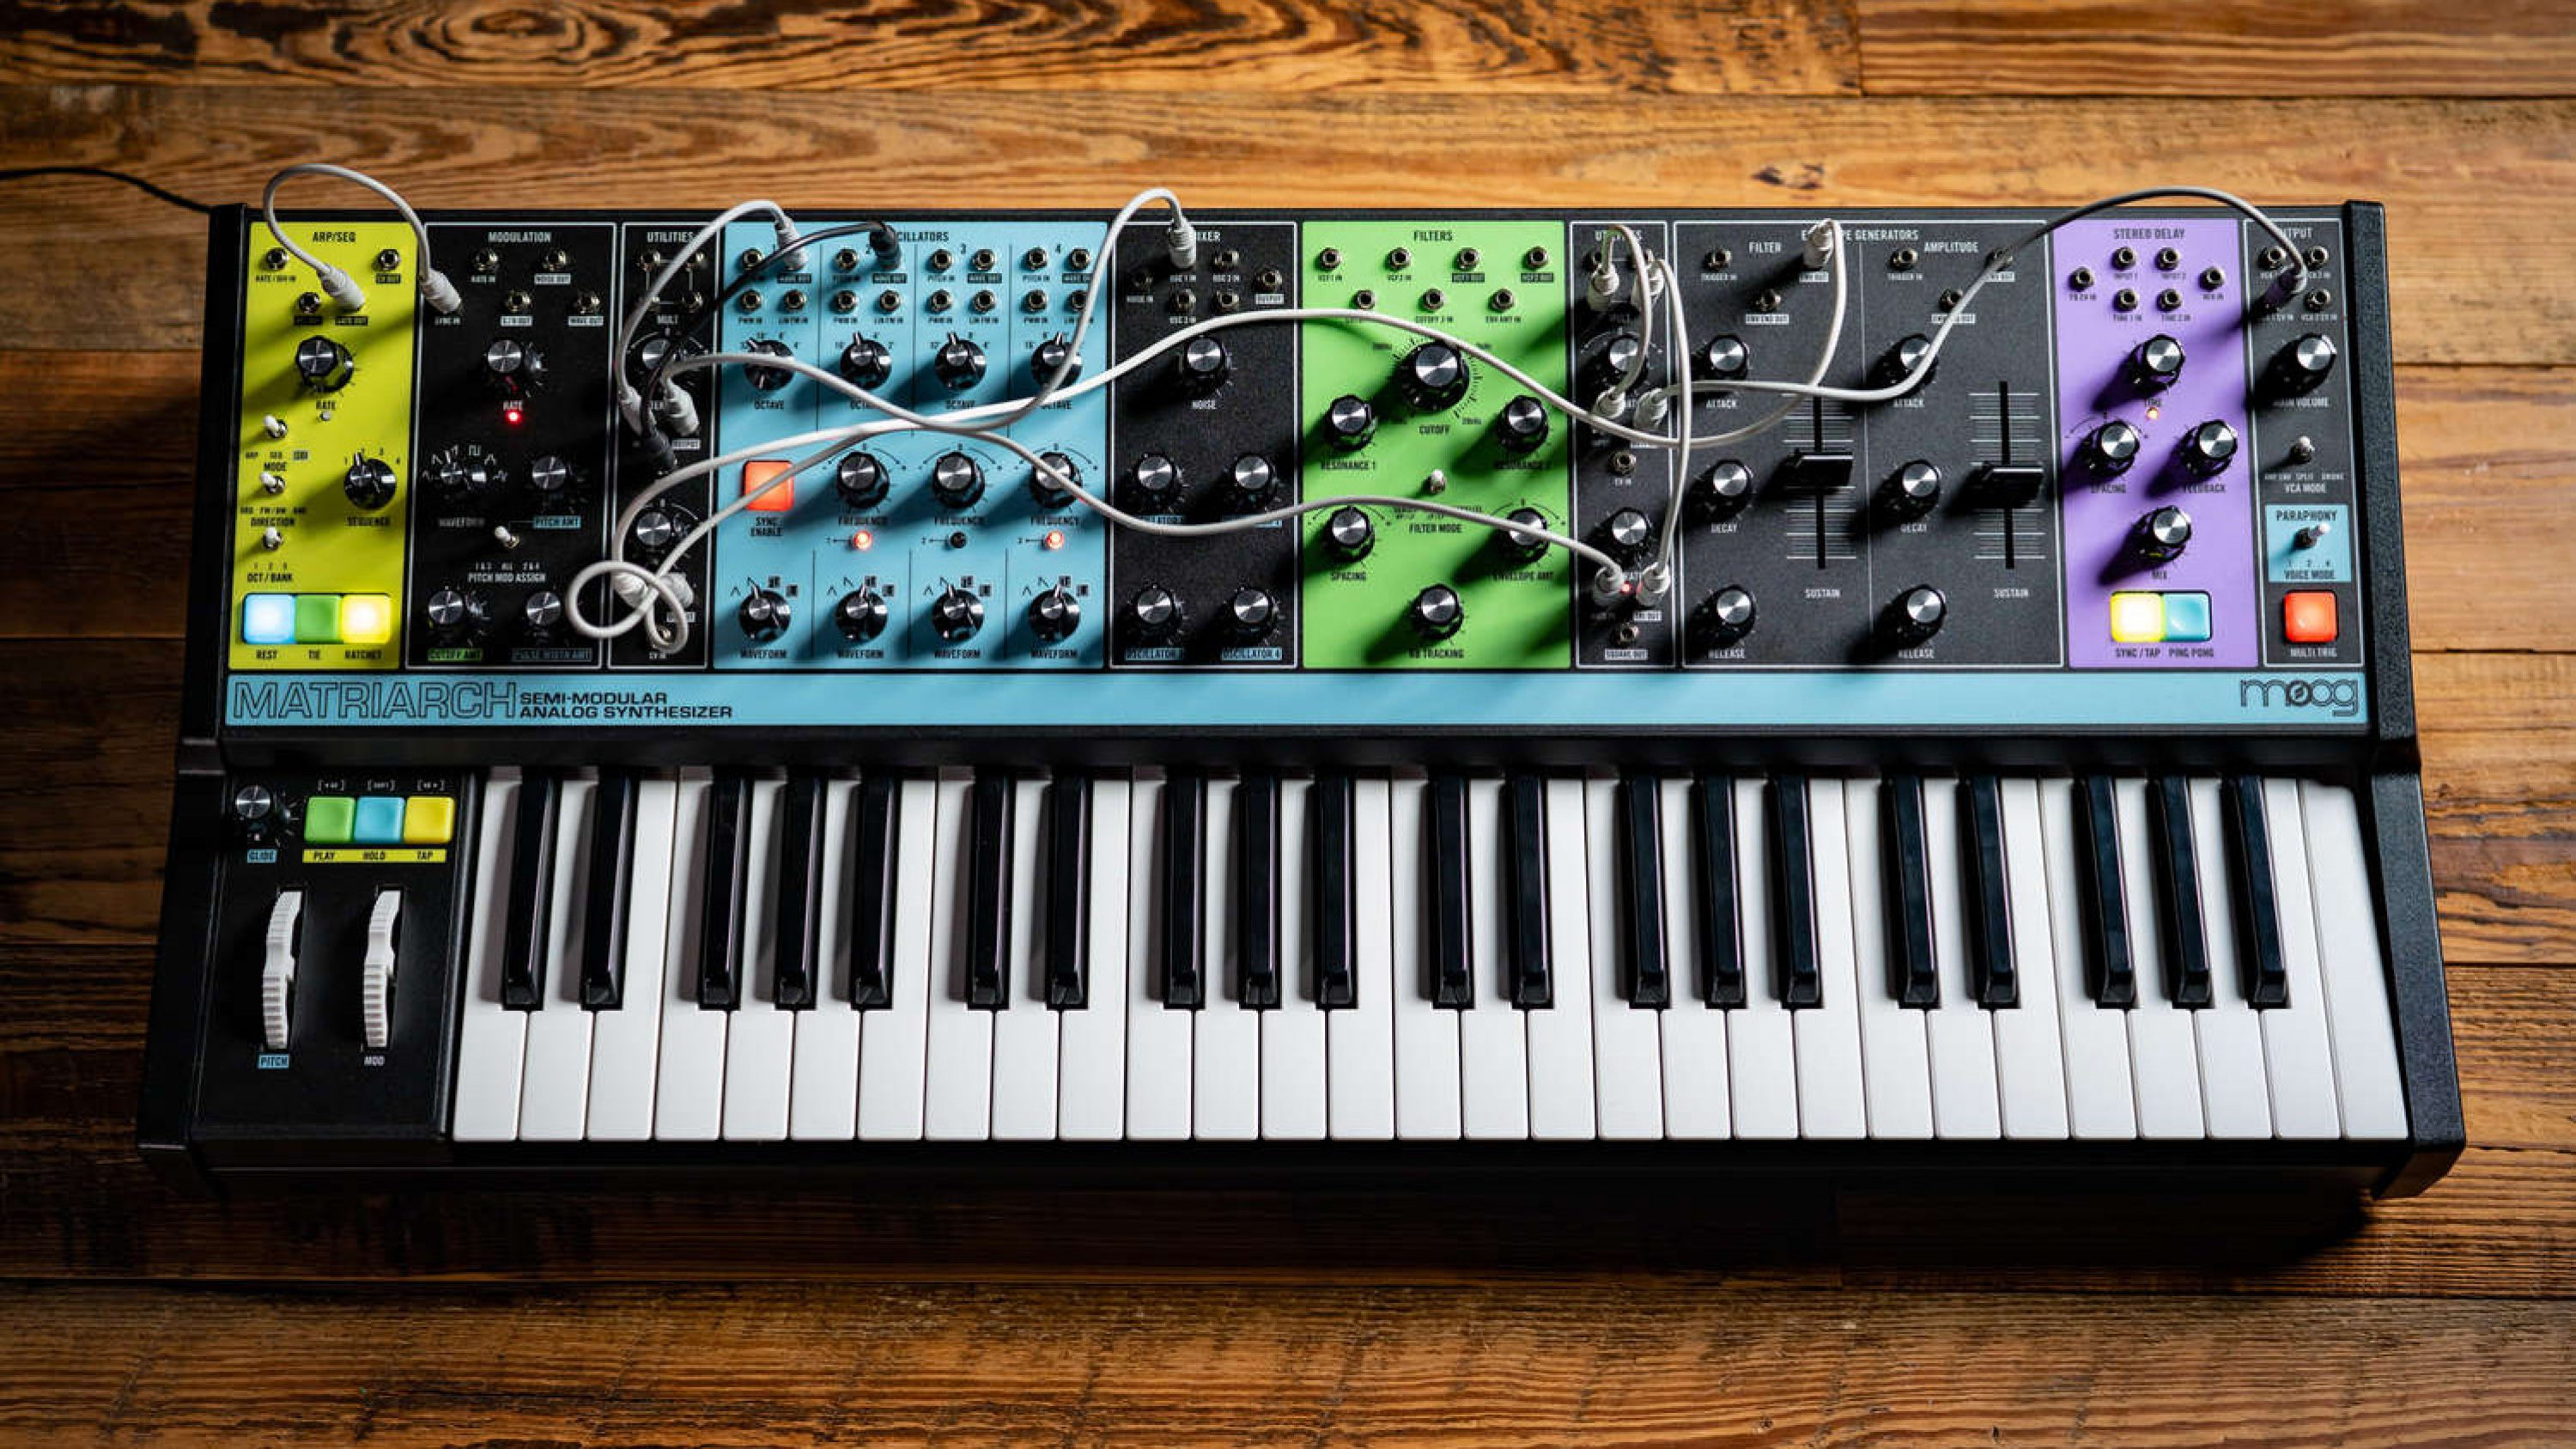 Moog Completes the Family Portrait with the New Moog Matriarch